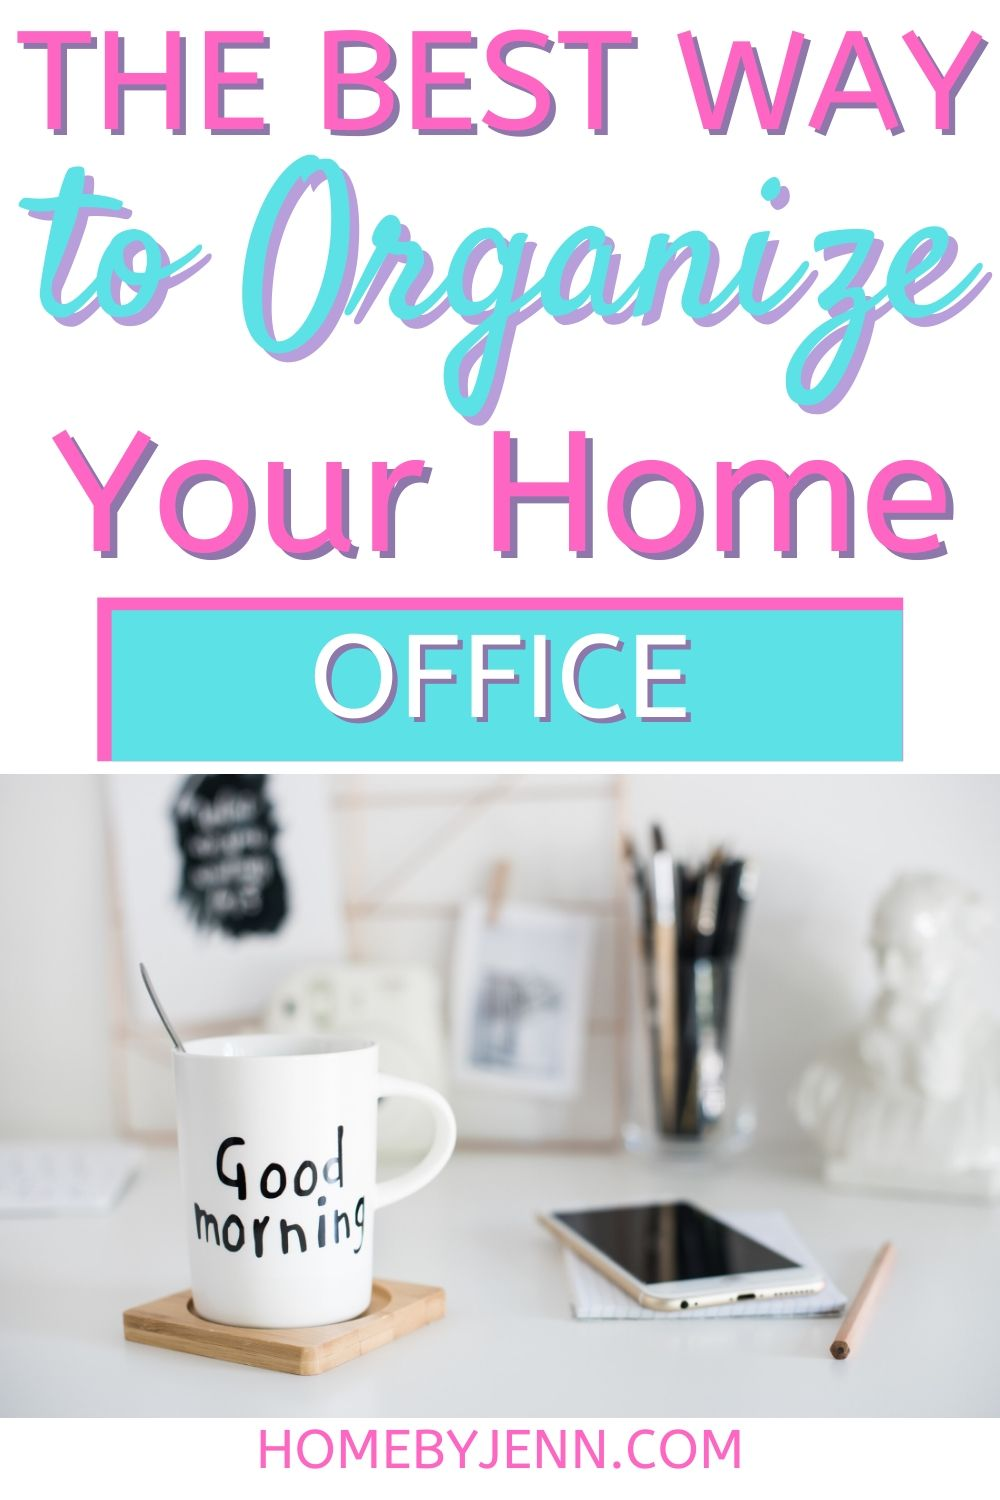 Organize your home office to boost productivity. These organizing tips will help you declutter your office and allow you to work efficiently. #organizing #homeorganization #declutter #organizingtips #organizinghacks via @homebyjenn